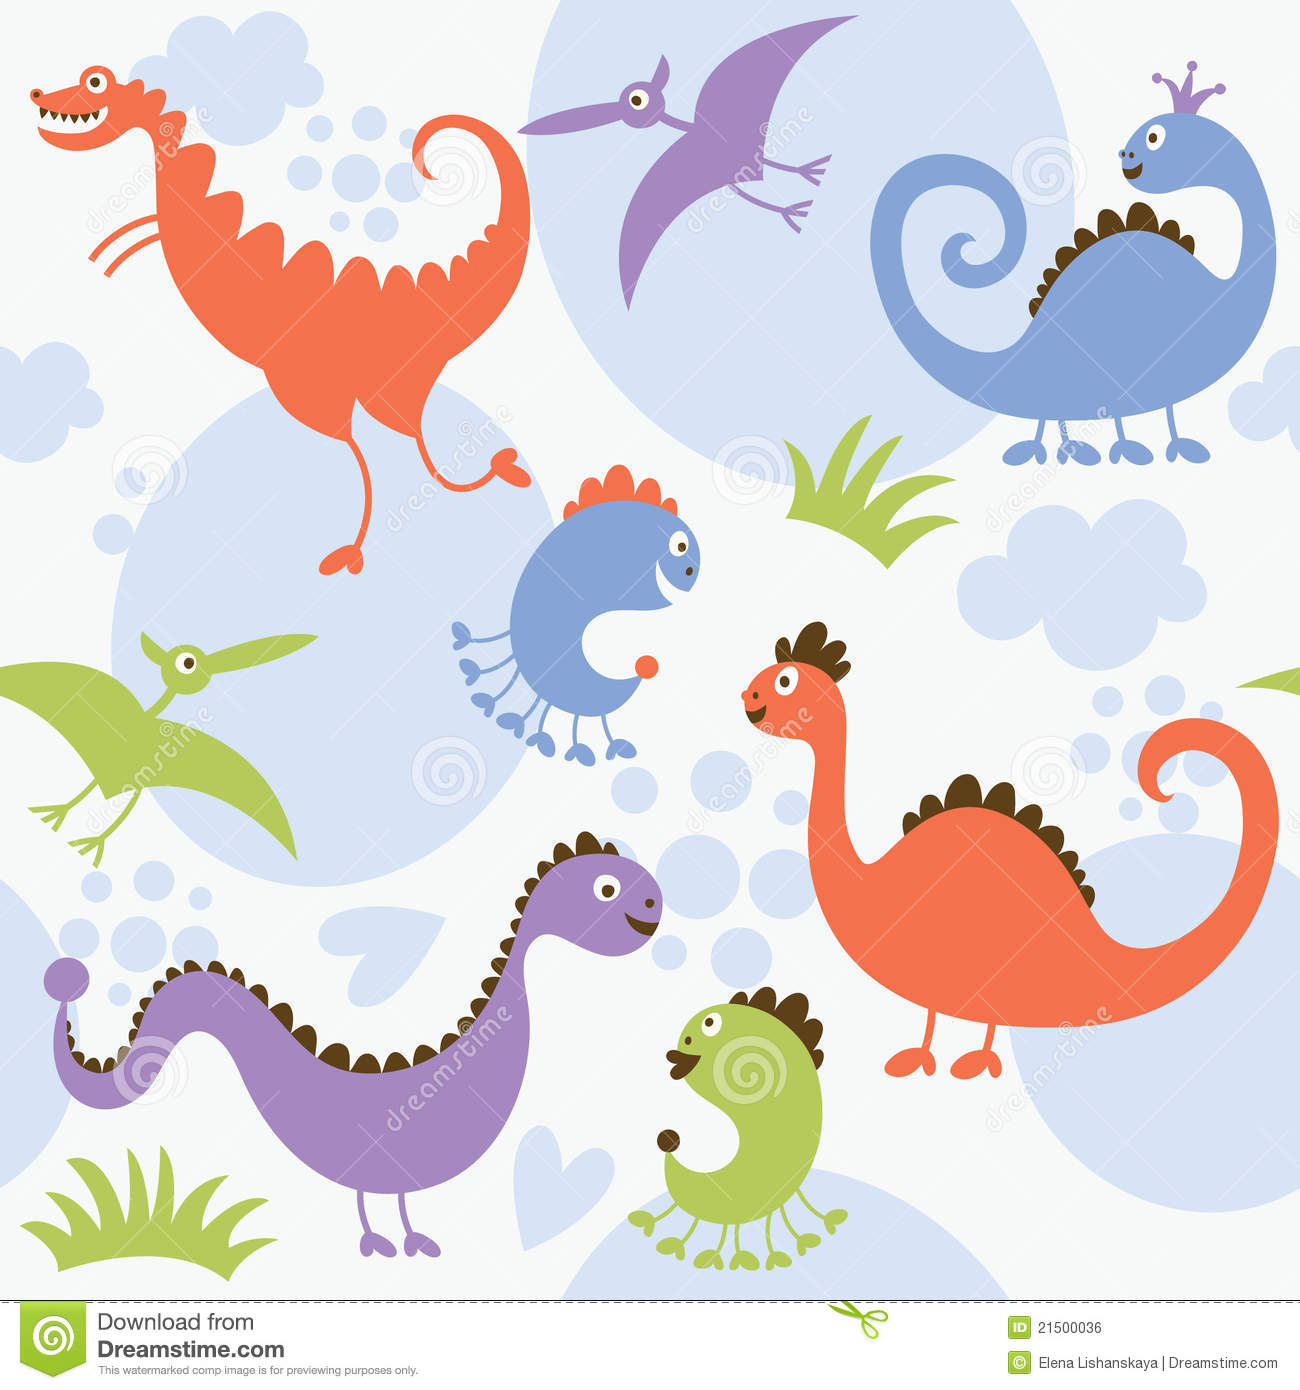 Seamless pattern, dinosaur stock vector. Illustration of kids - 21500036